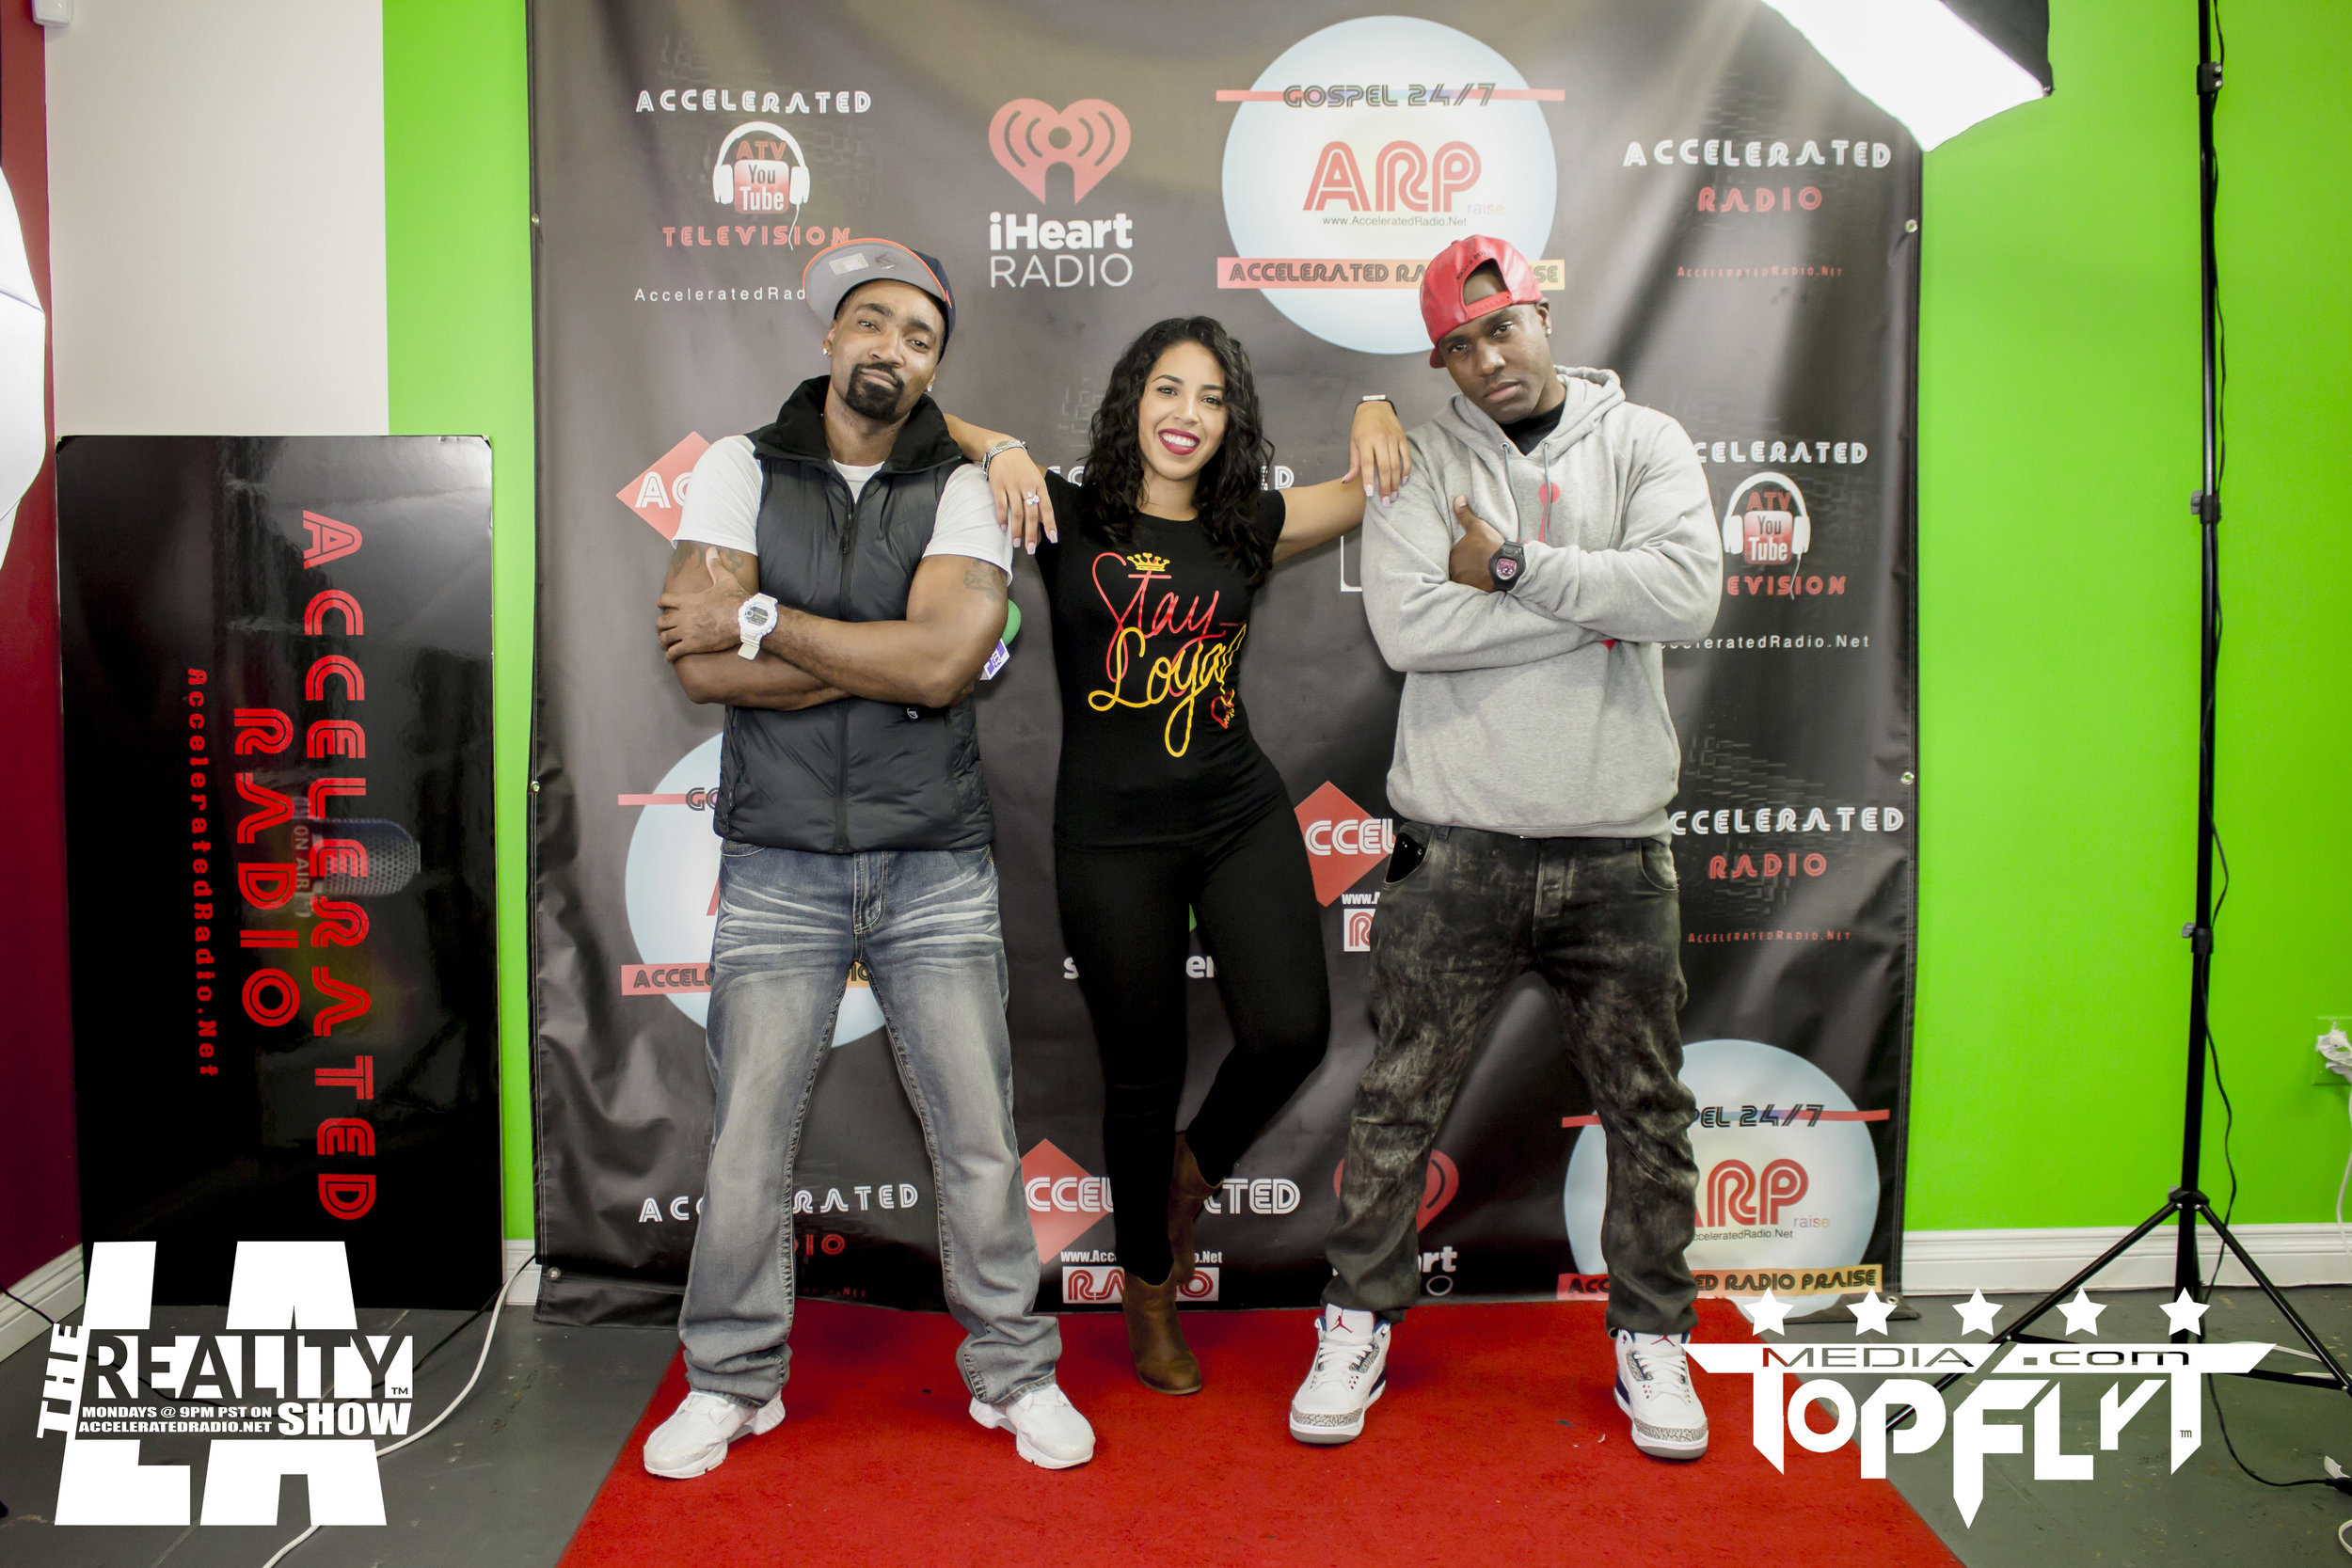 The Reality Show LA ft. Cast of FunnyMarriedStuff And Raquel Harris - 01-16-17_57.jpg